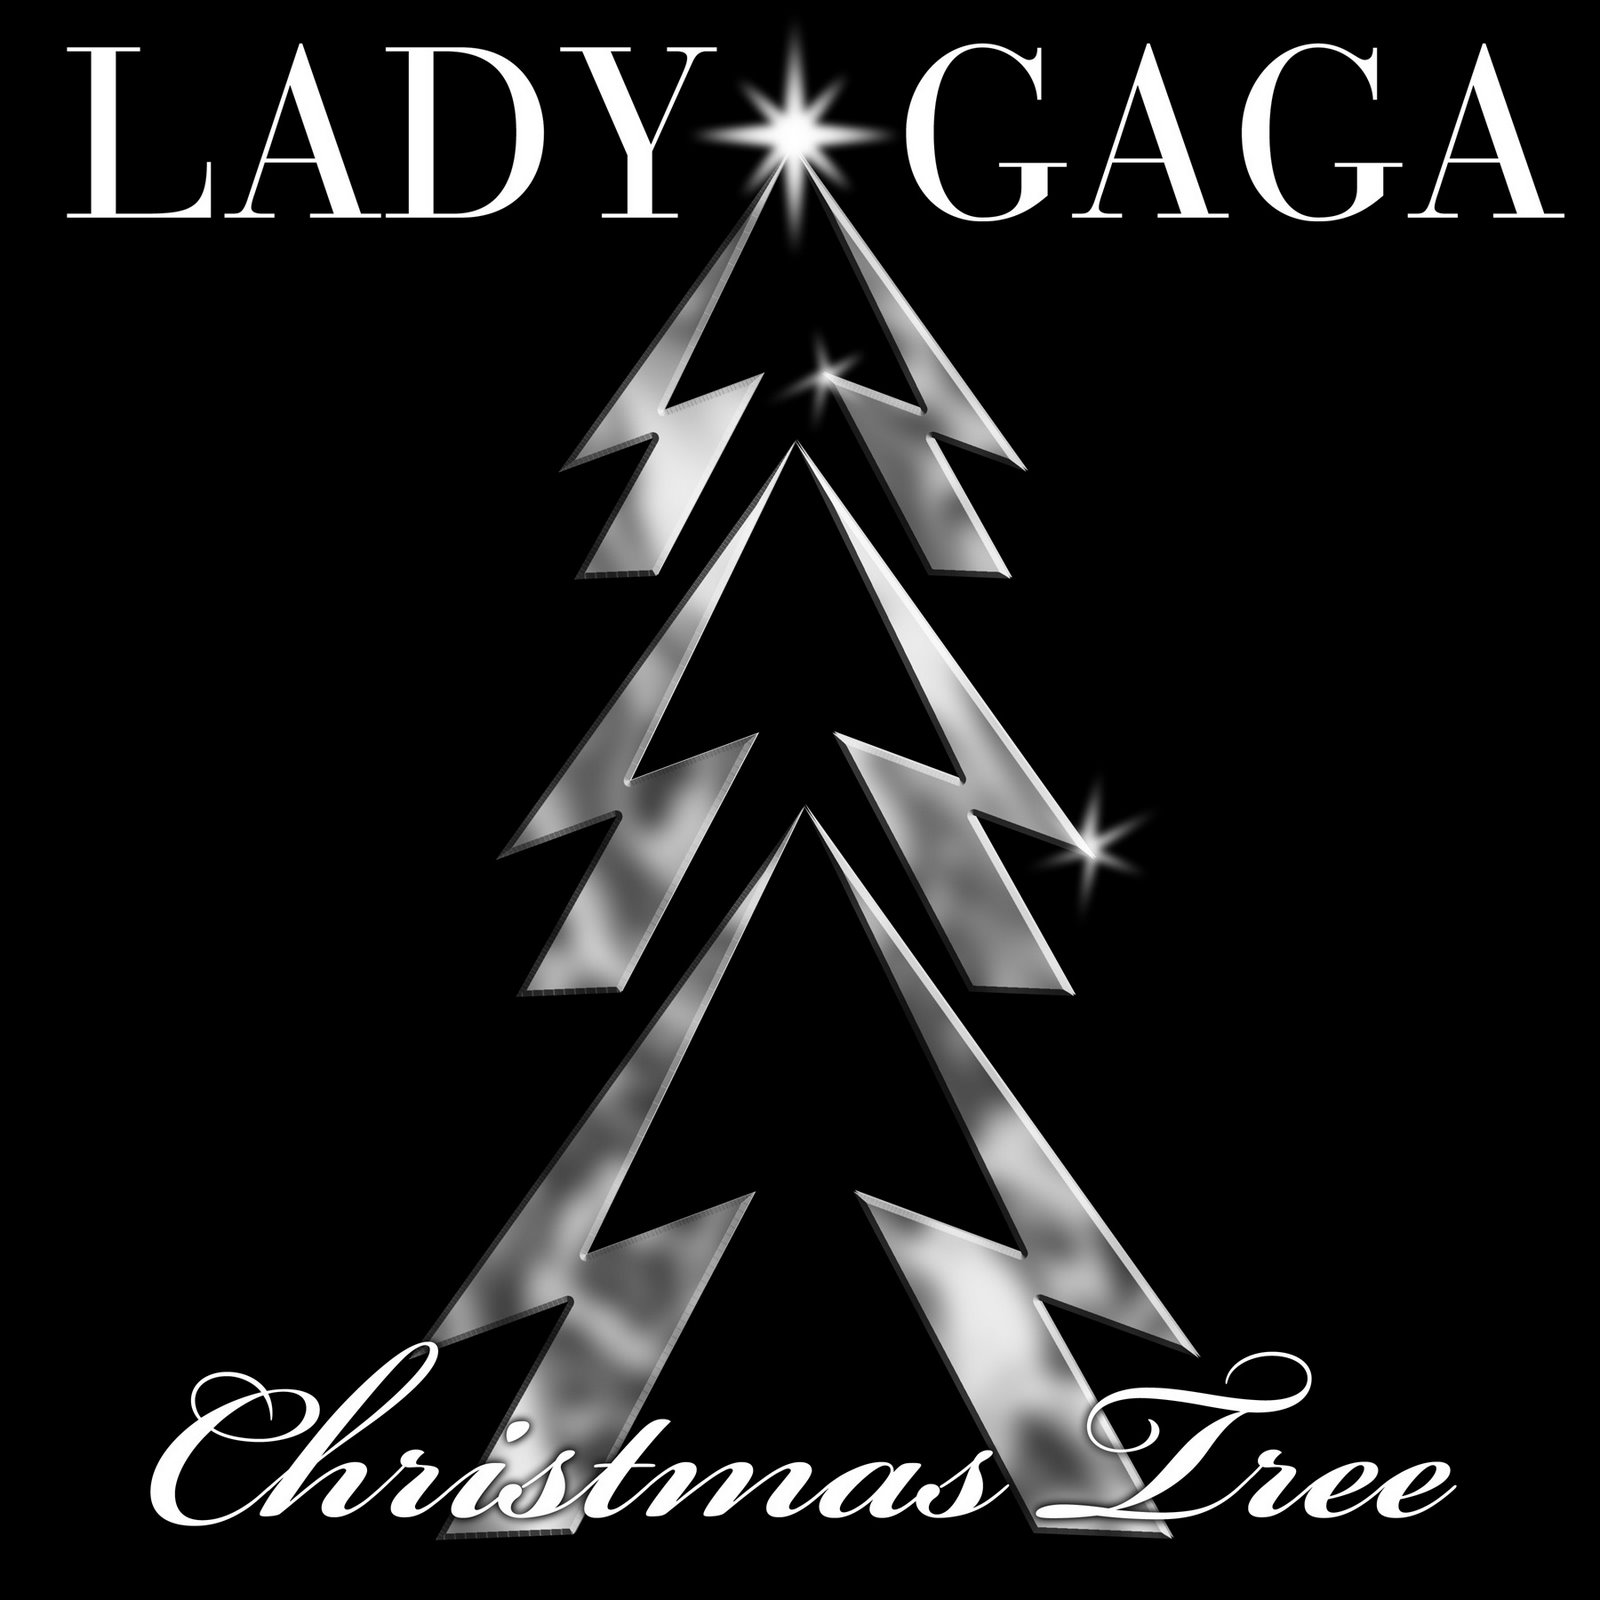 Lady_Gaga_-_Christmas_Tree_-Artwork-.jpg